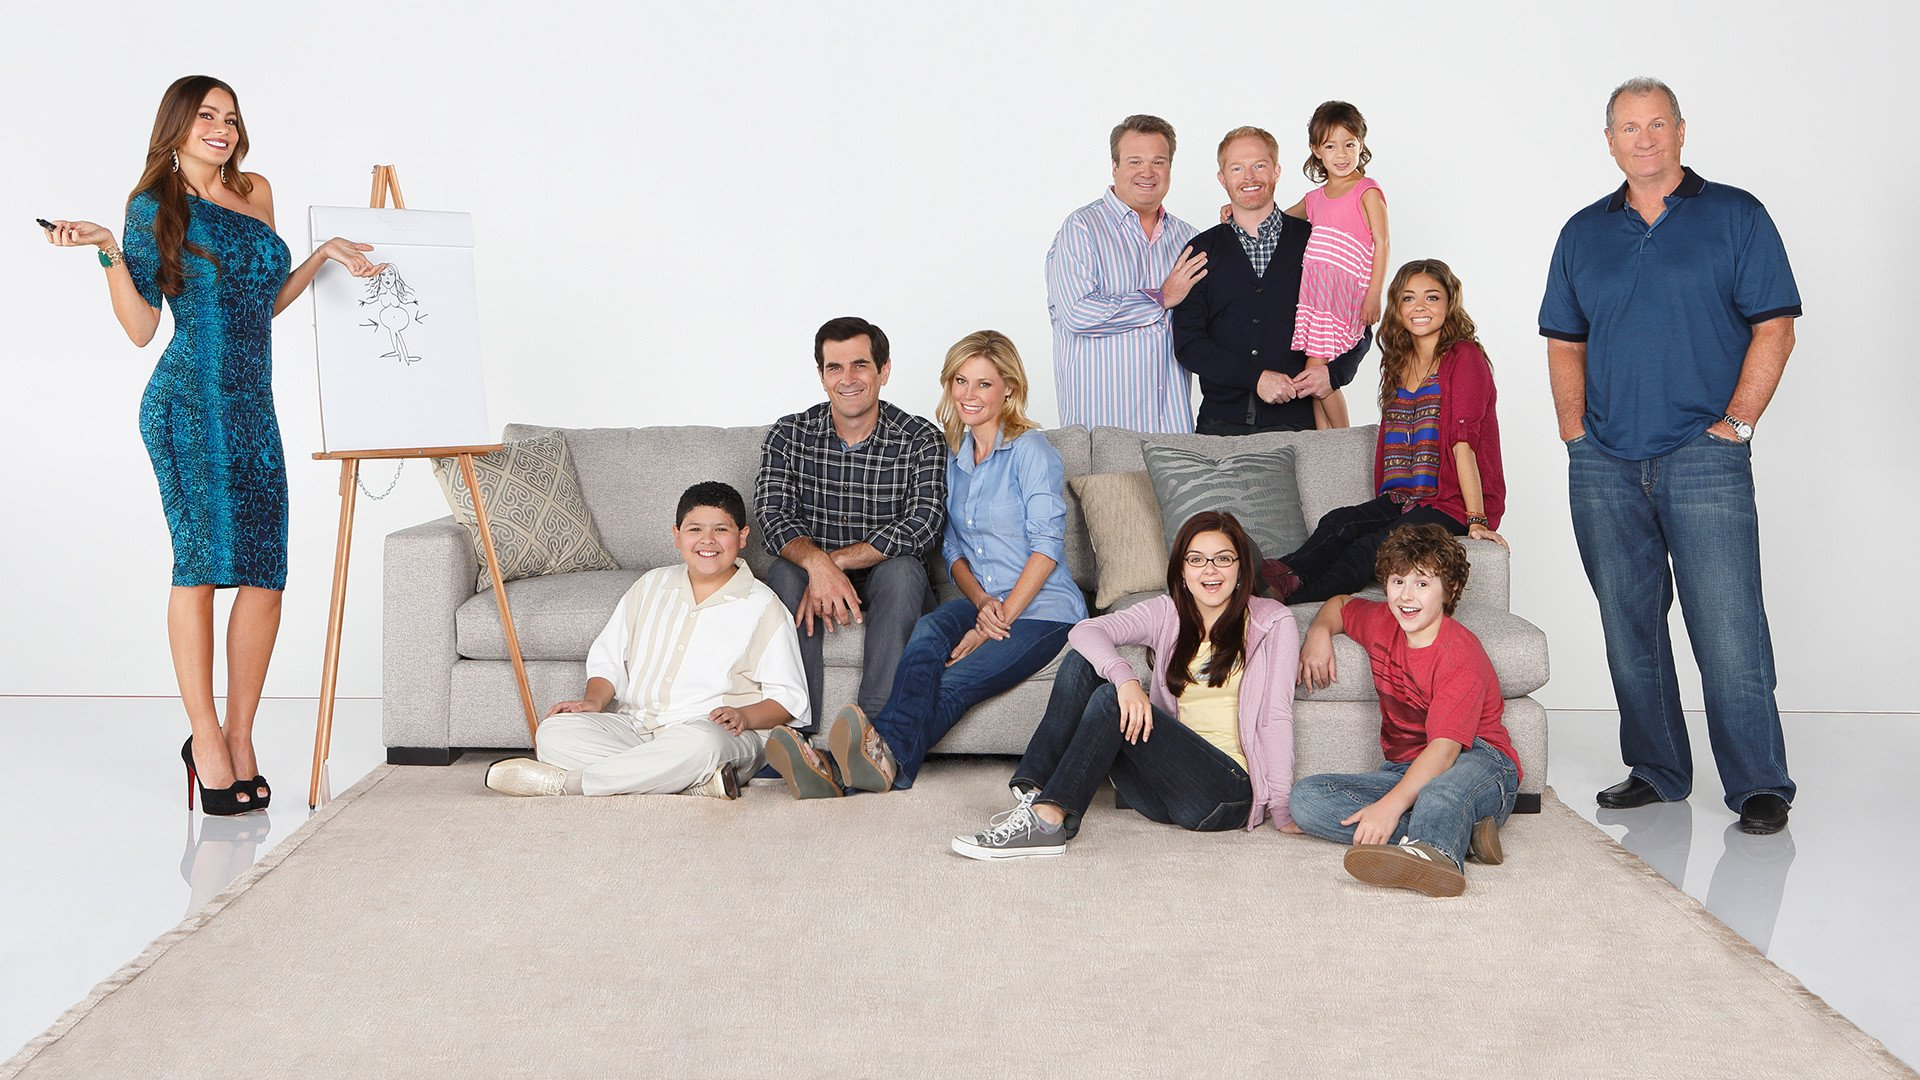 modern family images wallpaper - photo #17